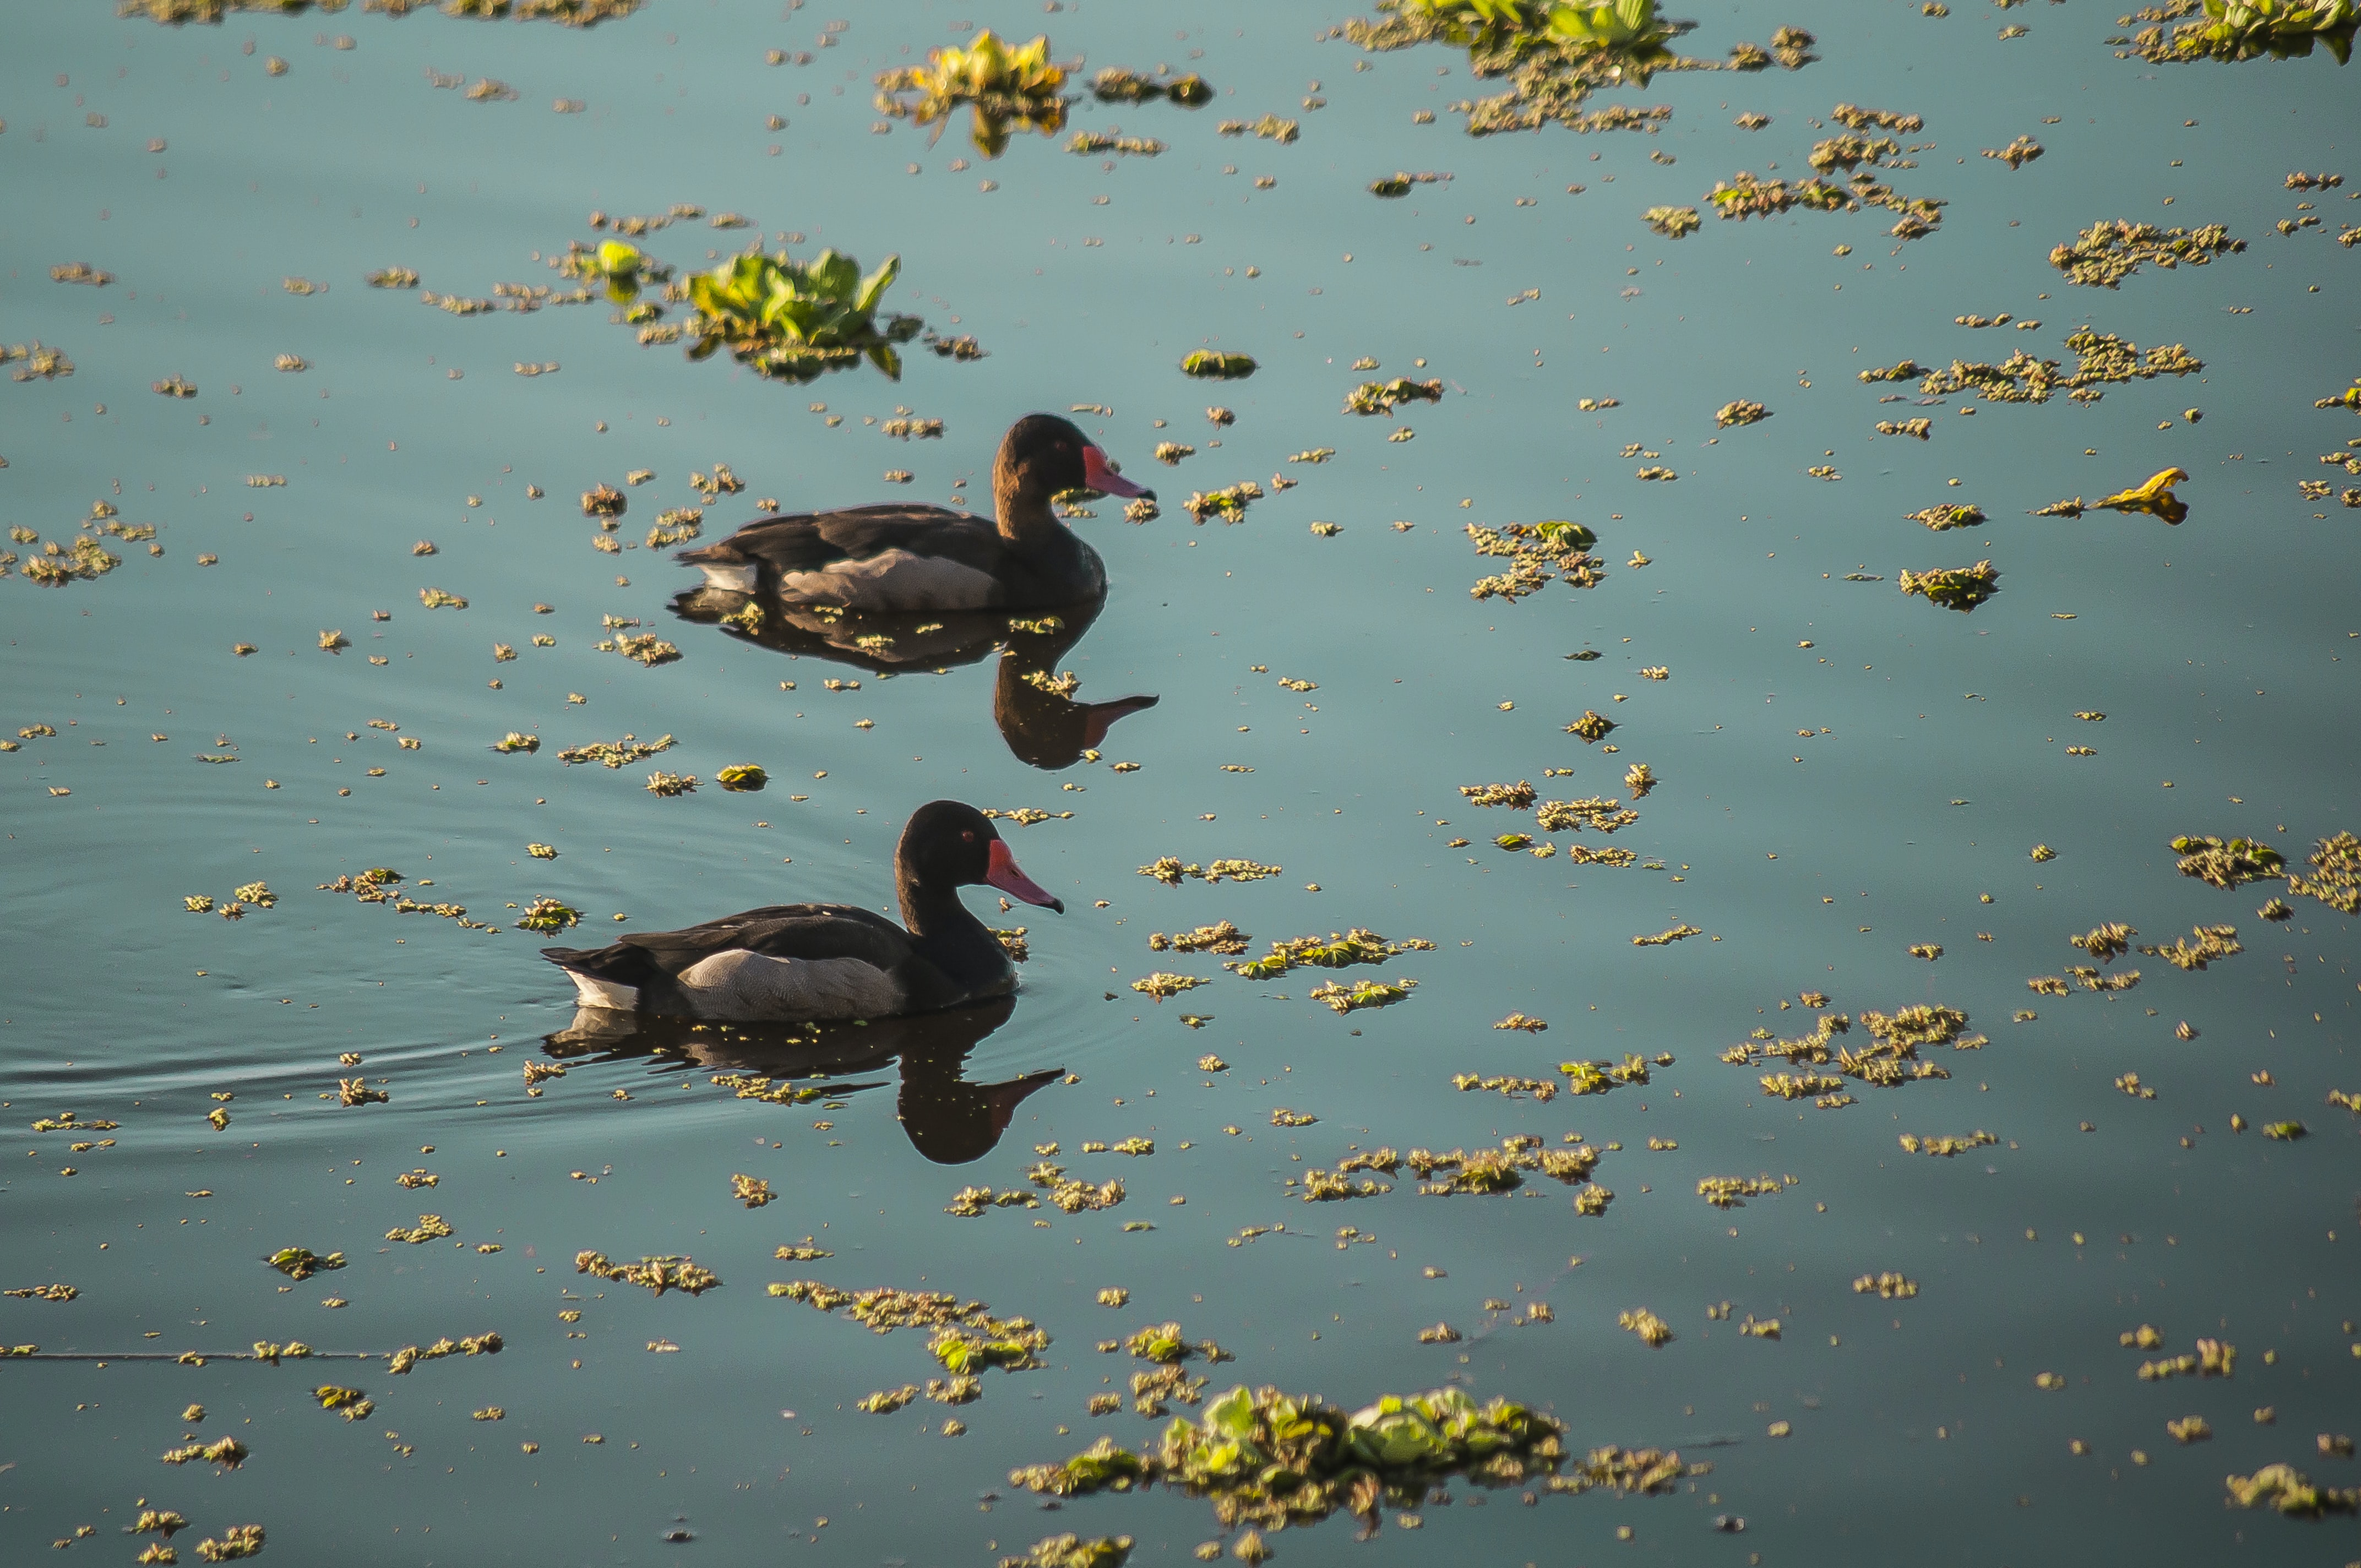 two ducks on body of water